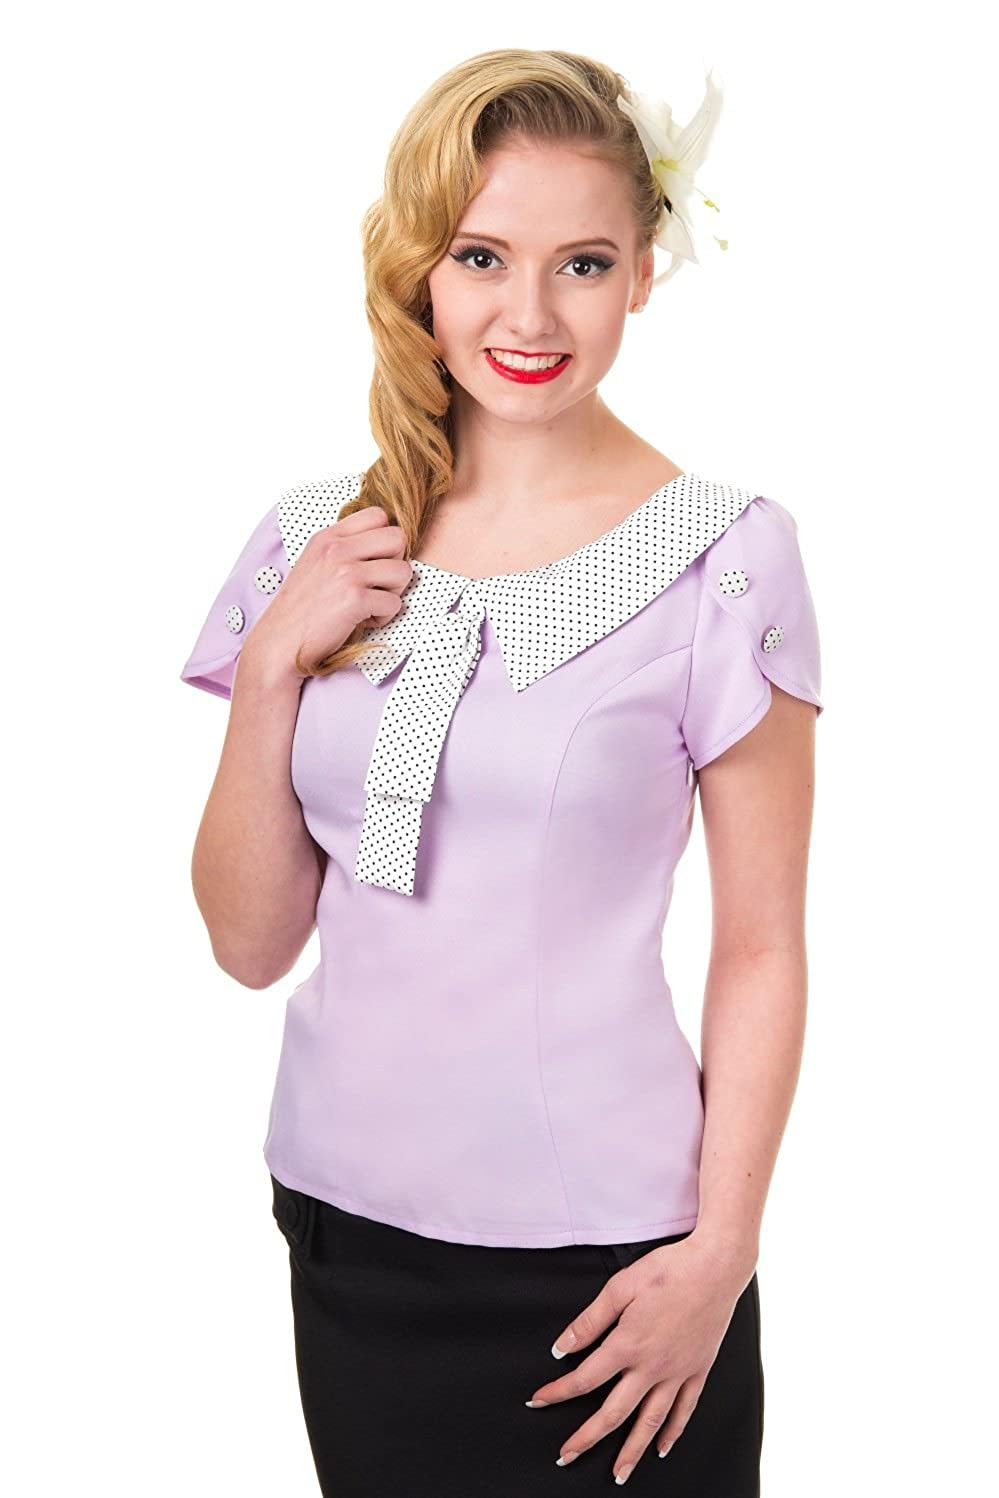 1930s Style Blouses, Shirts, Tops | Vintage Blouses Banned Apparel - Two Hearts Shirt $38.78 AT vintagedancer.com